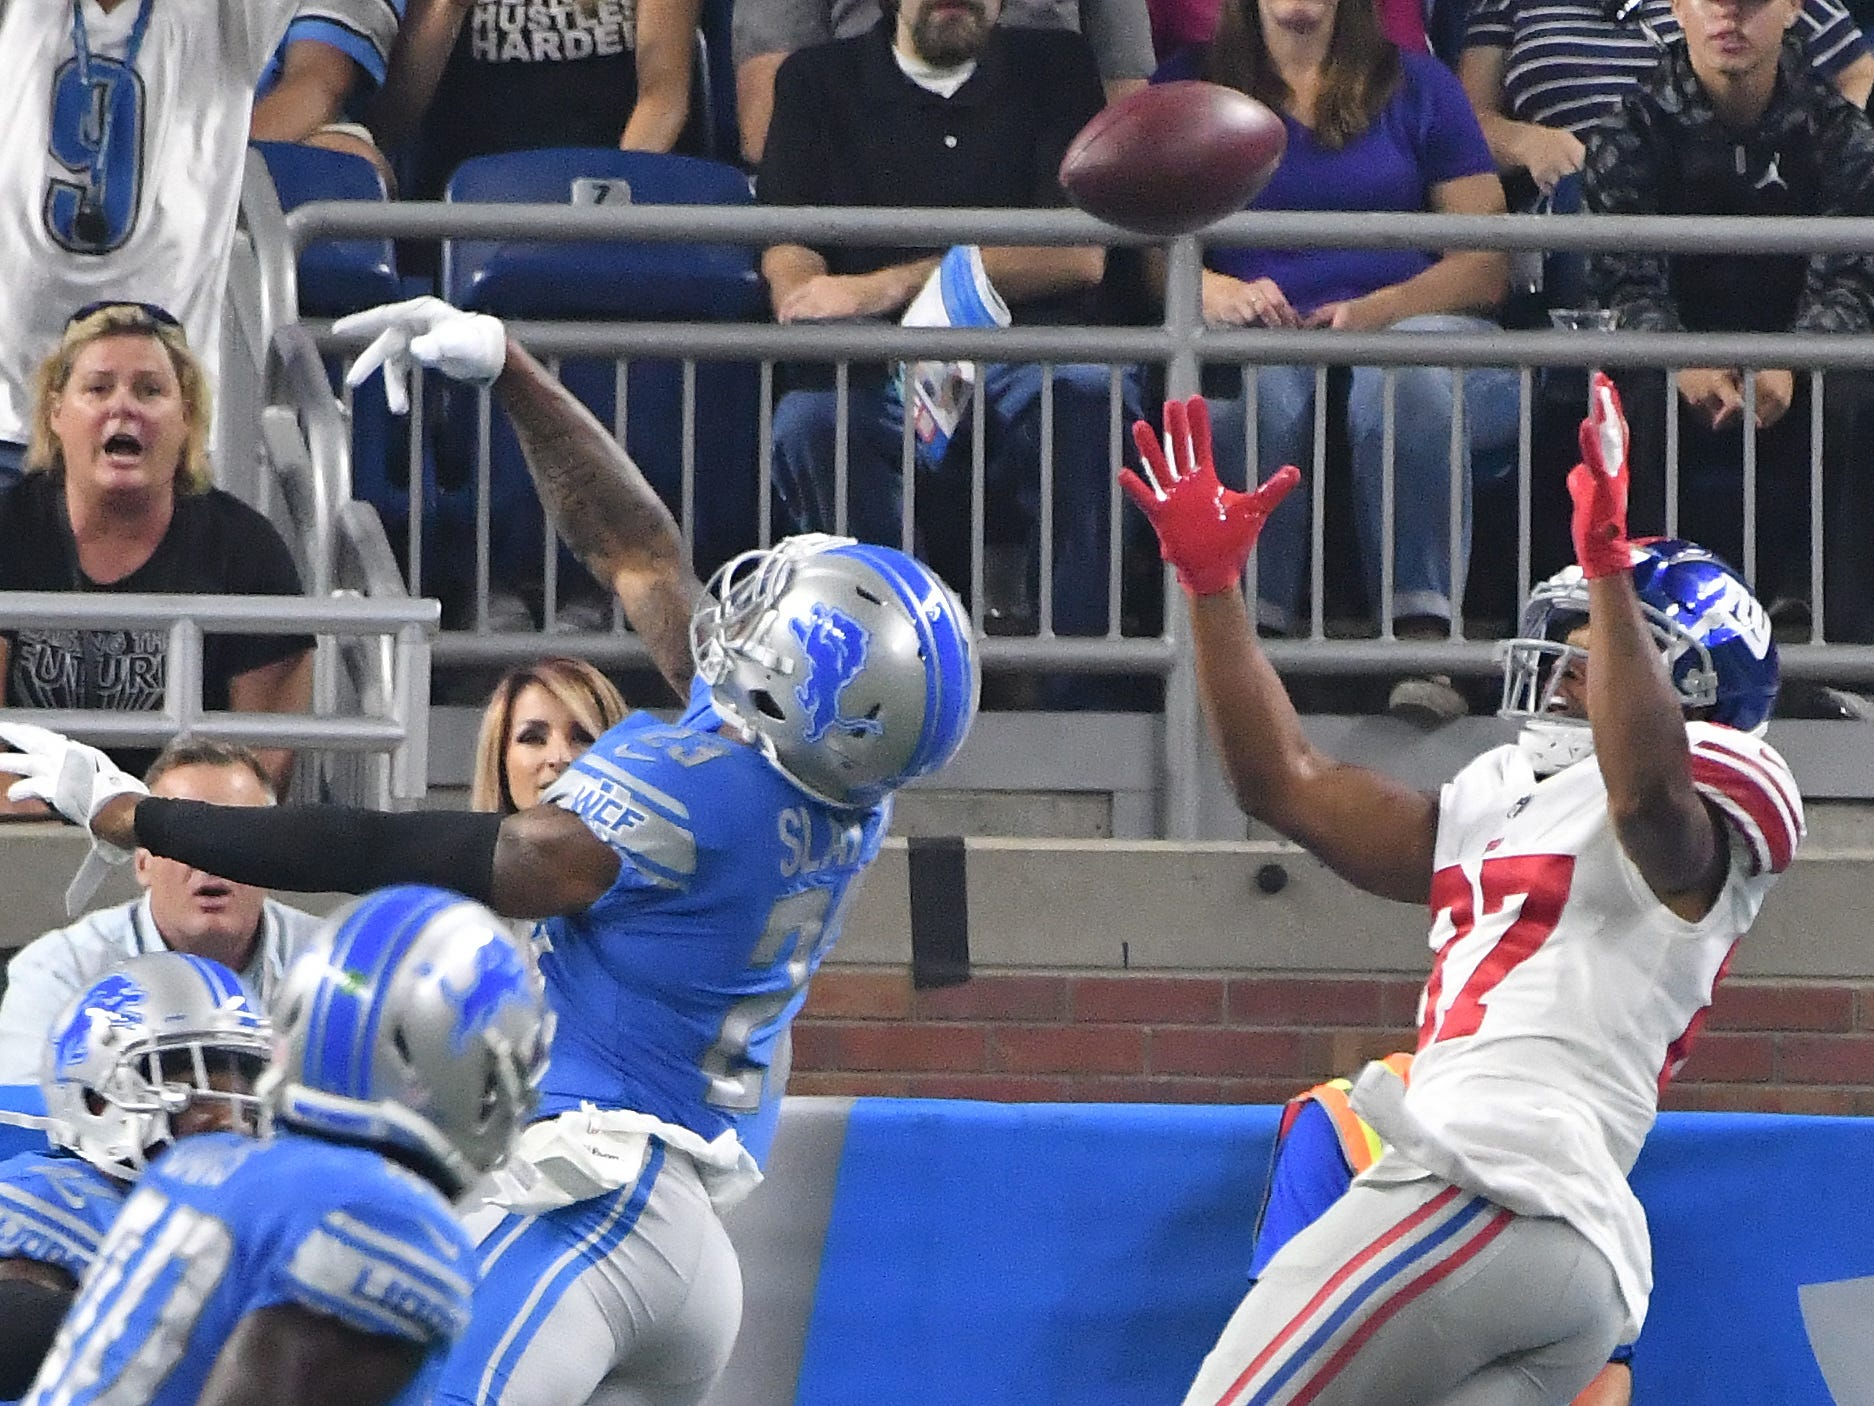 Lions' Darius Slay is able tip the ball, breaking up a pass intended for Giants' Sterling Shepard in the end zone in the first quarter.